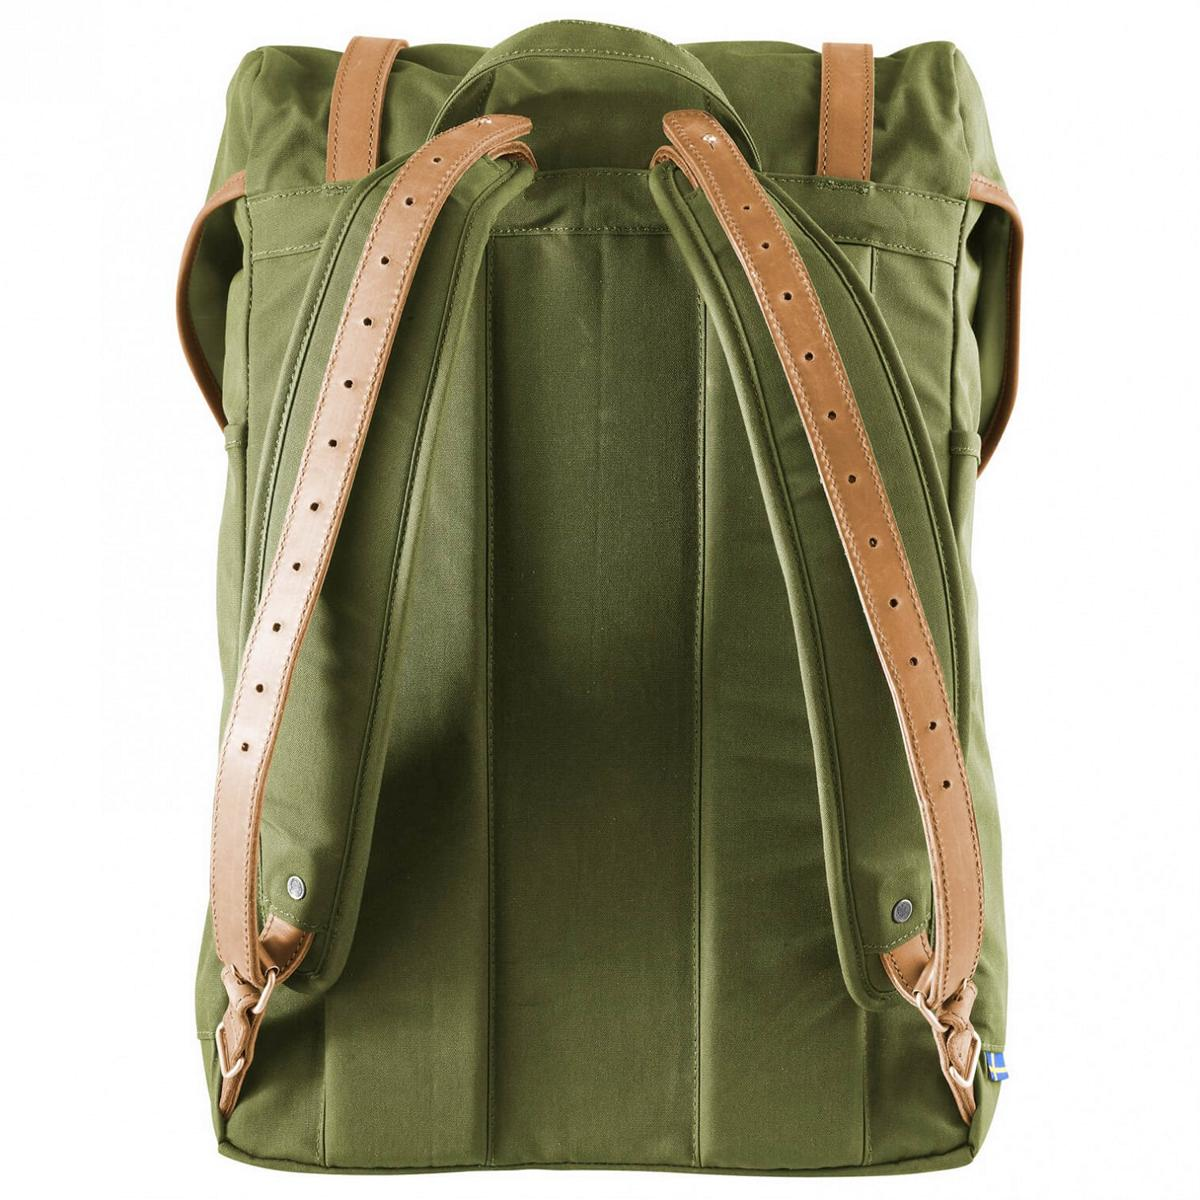 fjallraven-rucksack-no-21-medium- details mit lederriemen